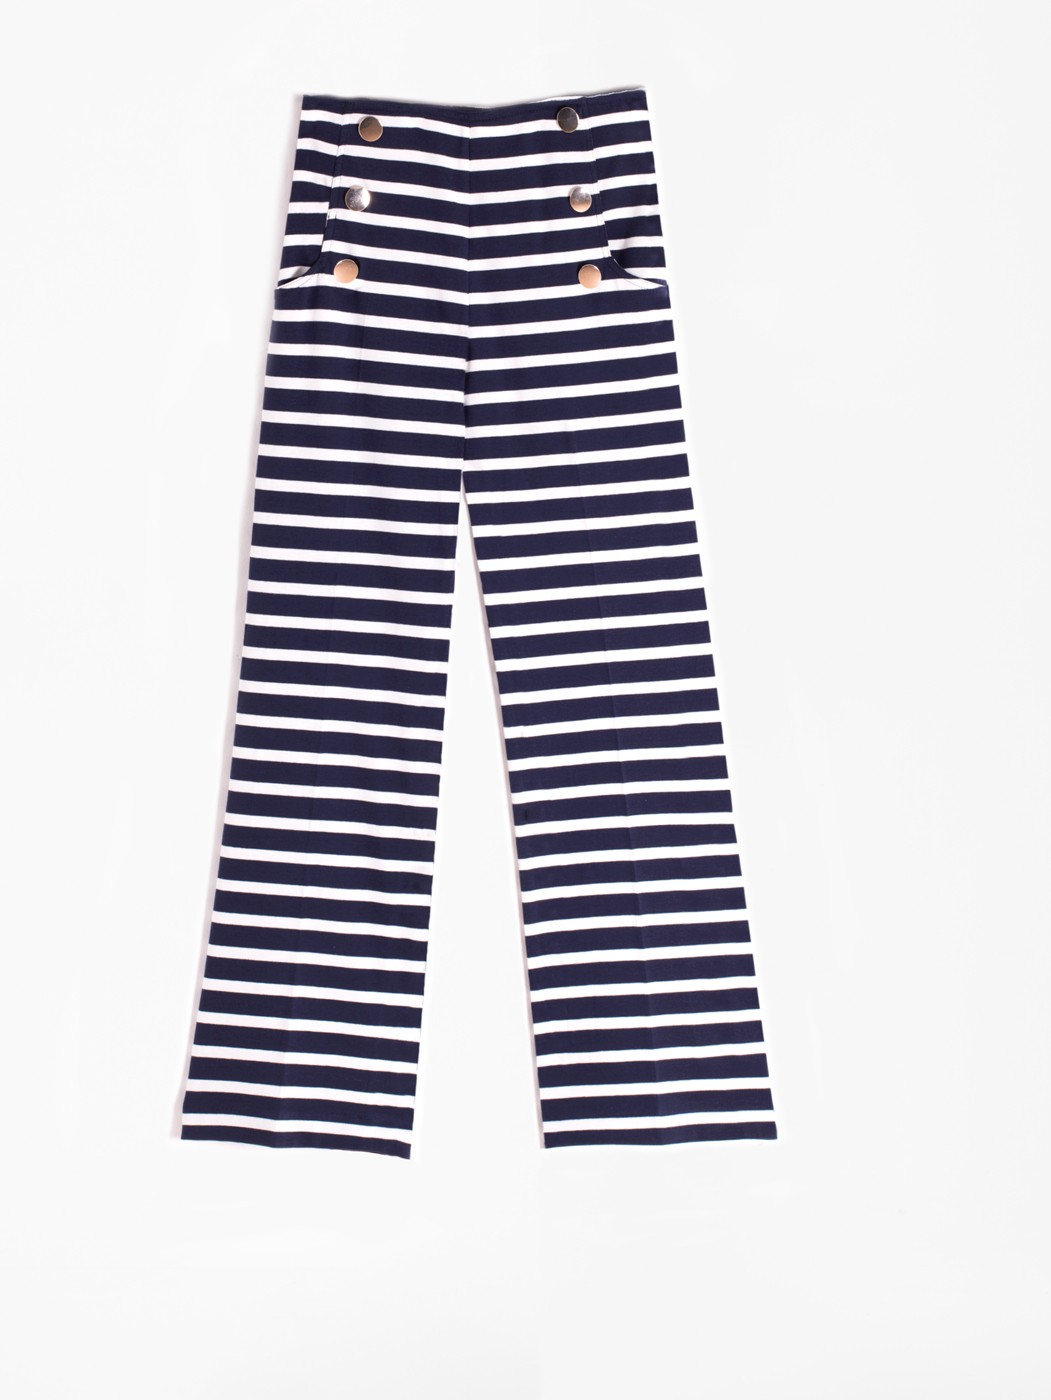 LIDIA TROUSERS KN NAVY STRIPES